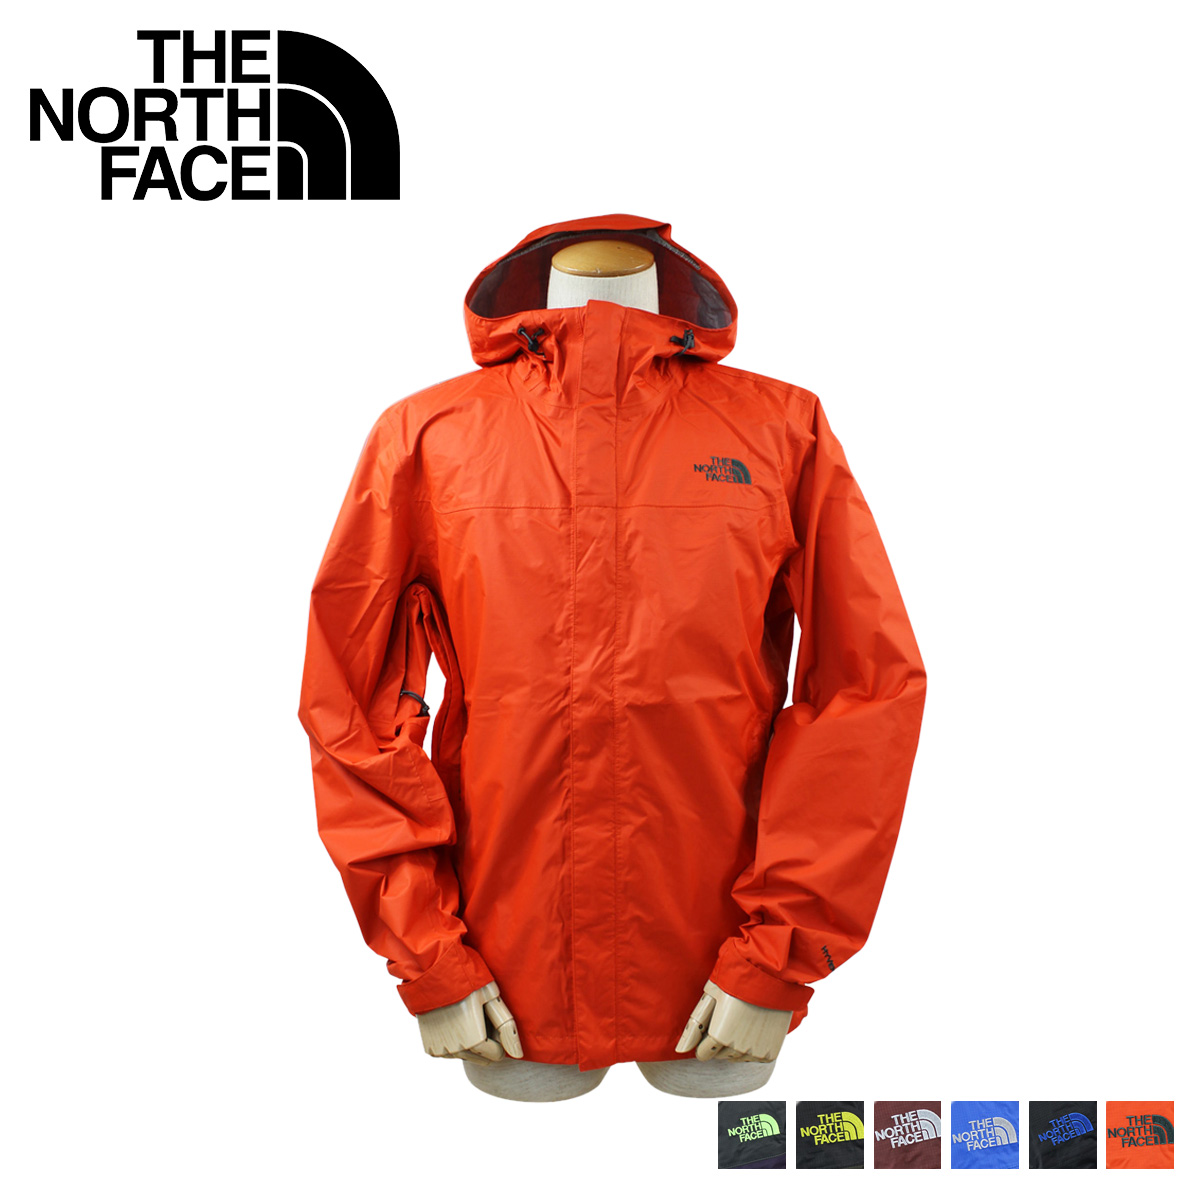 ALLSPORTS   laquo Soon raquo   laquo 10 7 days stock raquo  north face THE  NORTH FACE mens jacket nylon jacket A8AR6 color MEN s VENTURE JACKET  10 7  new in ... c2df08088